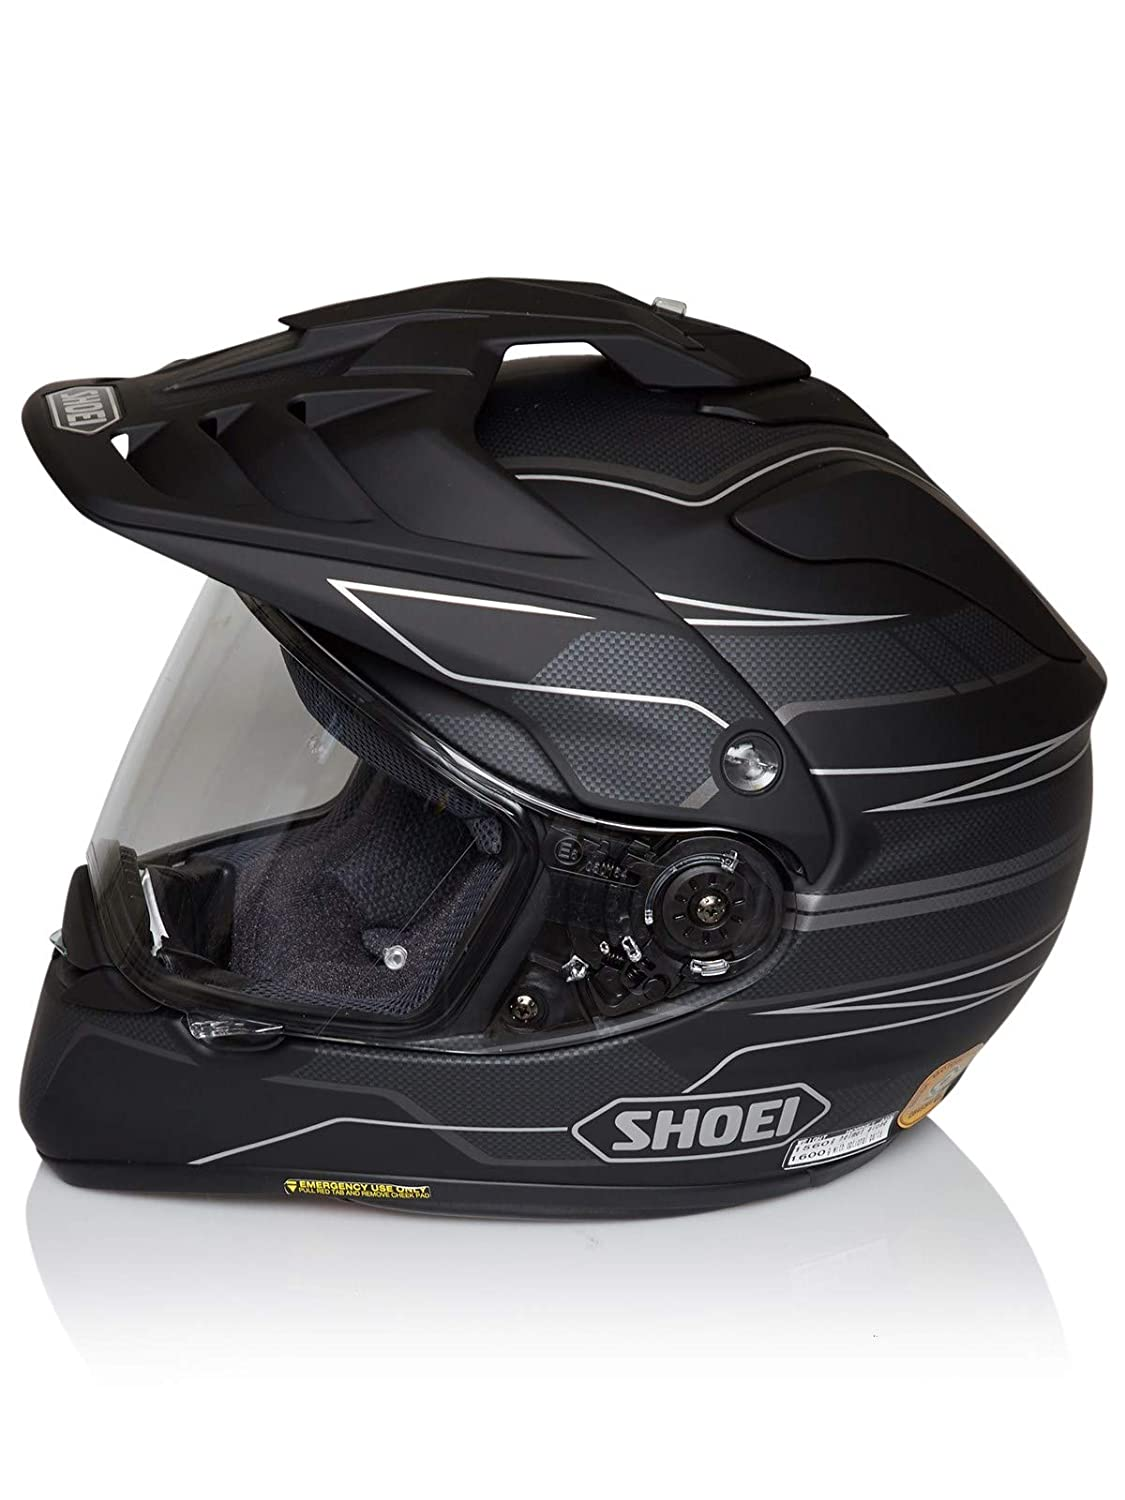 Amazon.es: Casco Enduro Mx Shoei Hornet Adv Navigate Tc-5 Negro Matt (S, Negro)